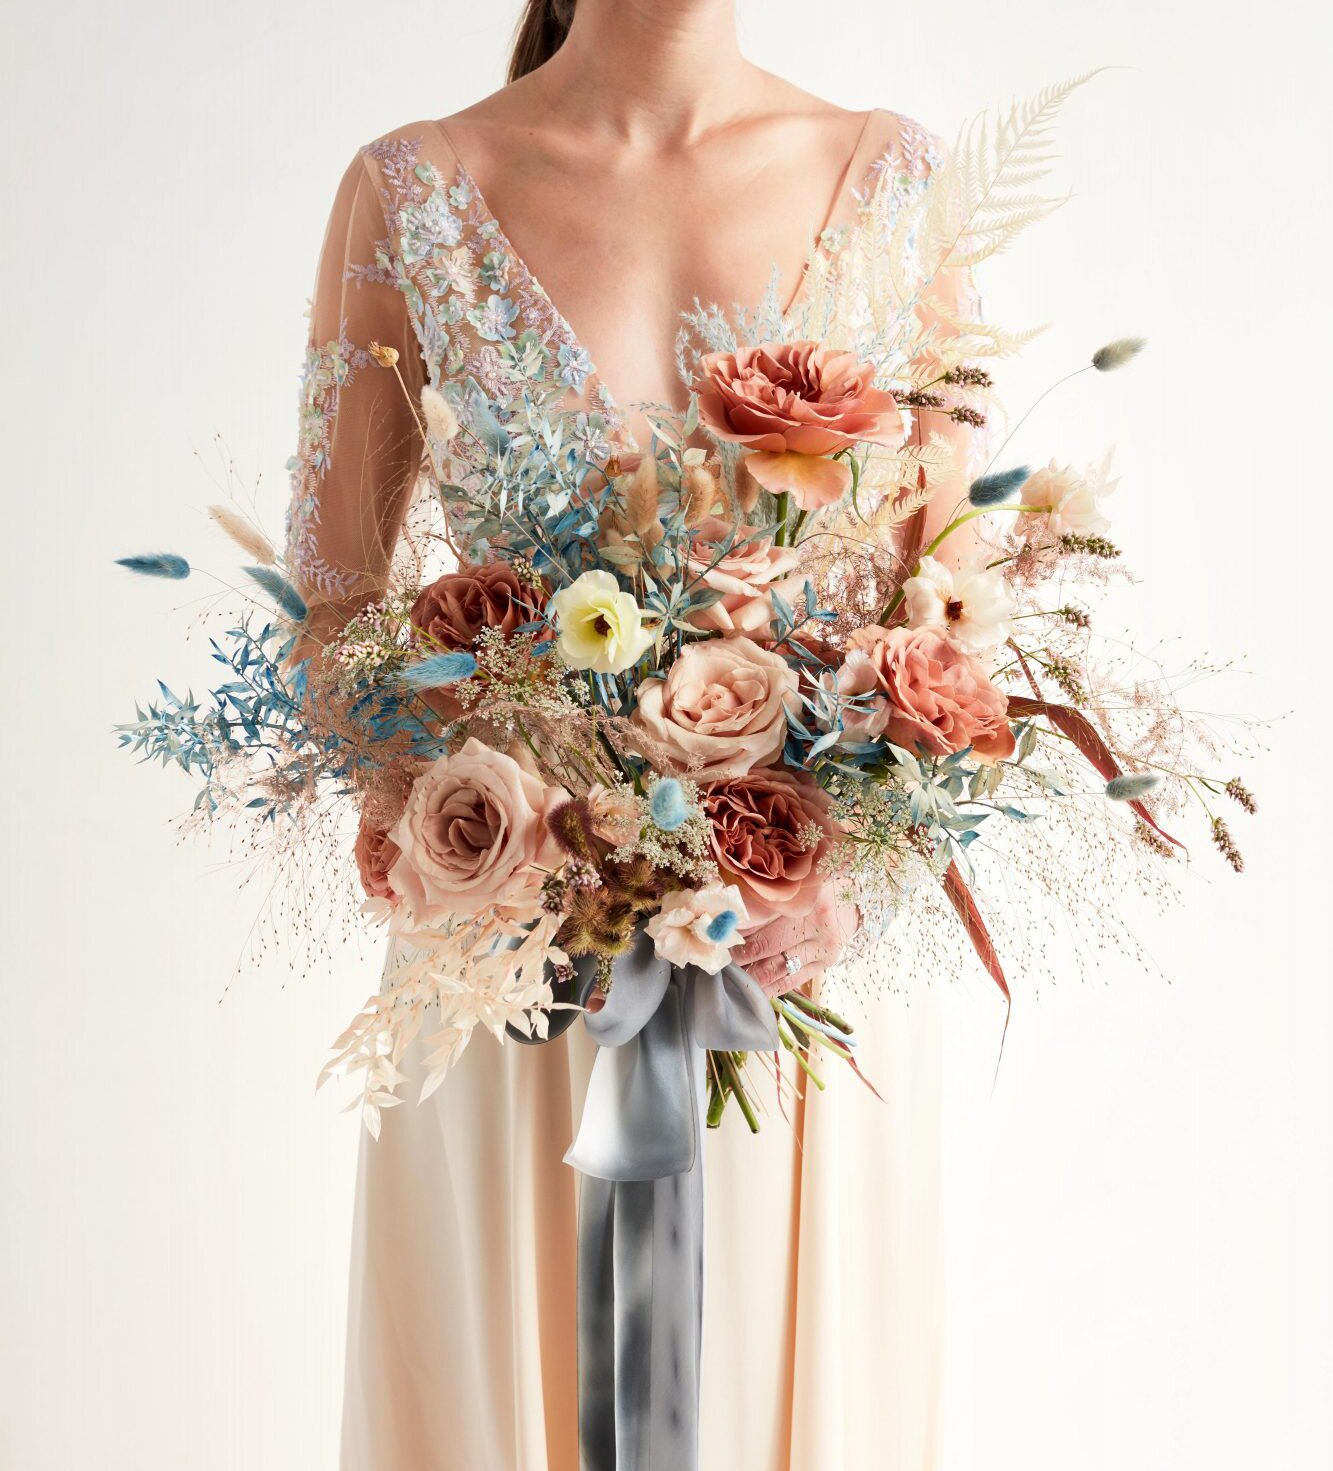 Bride Holding Colorful Bouquet with Dried Flowers